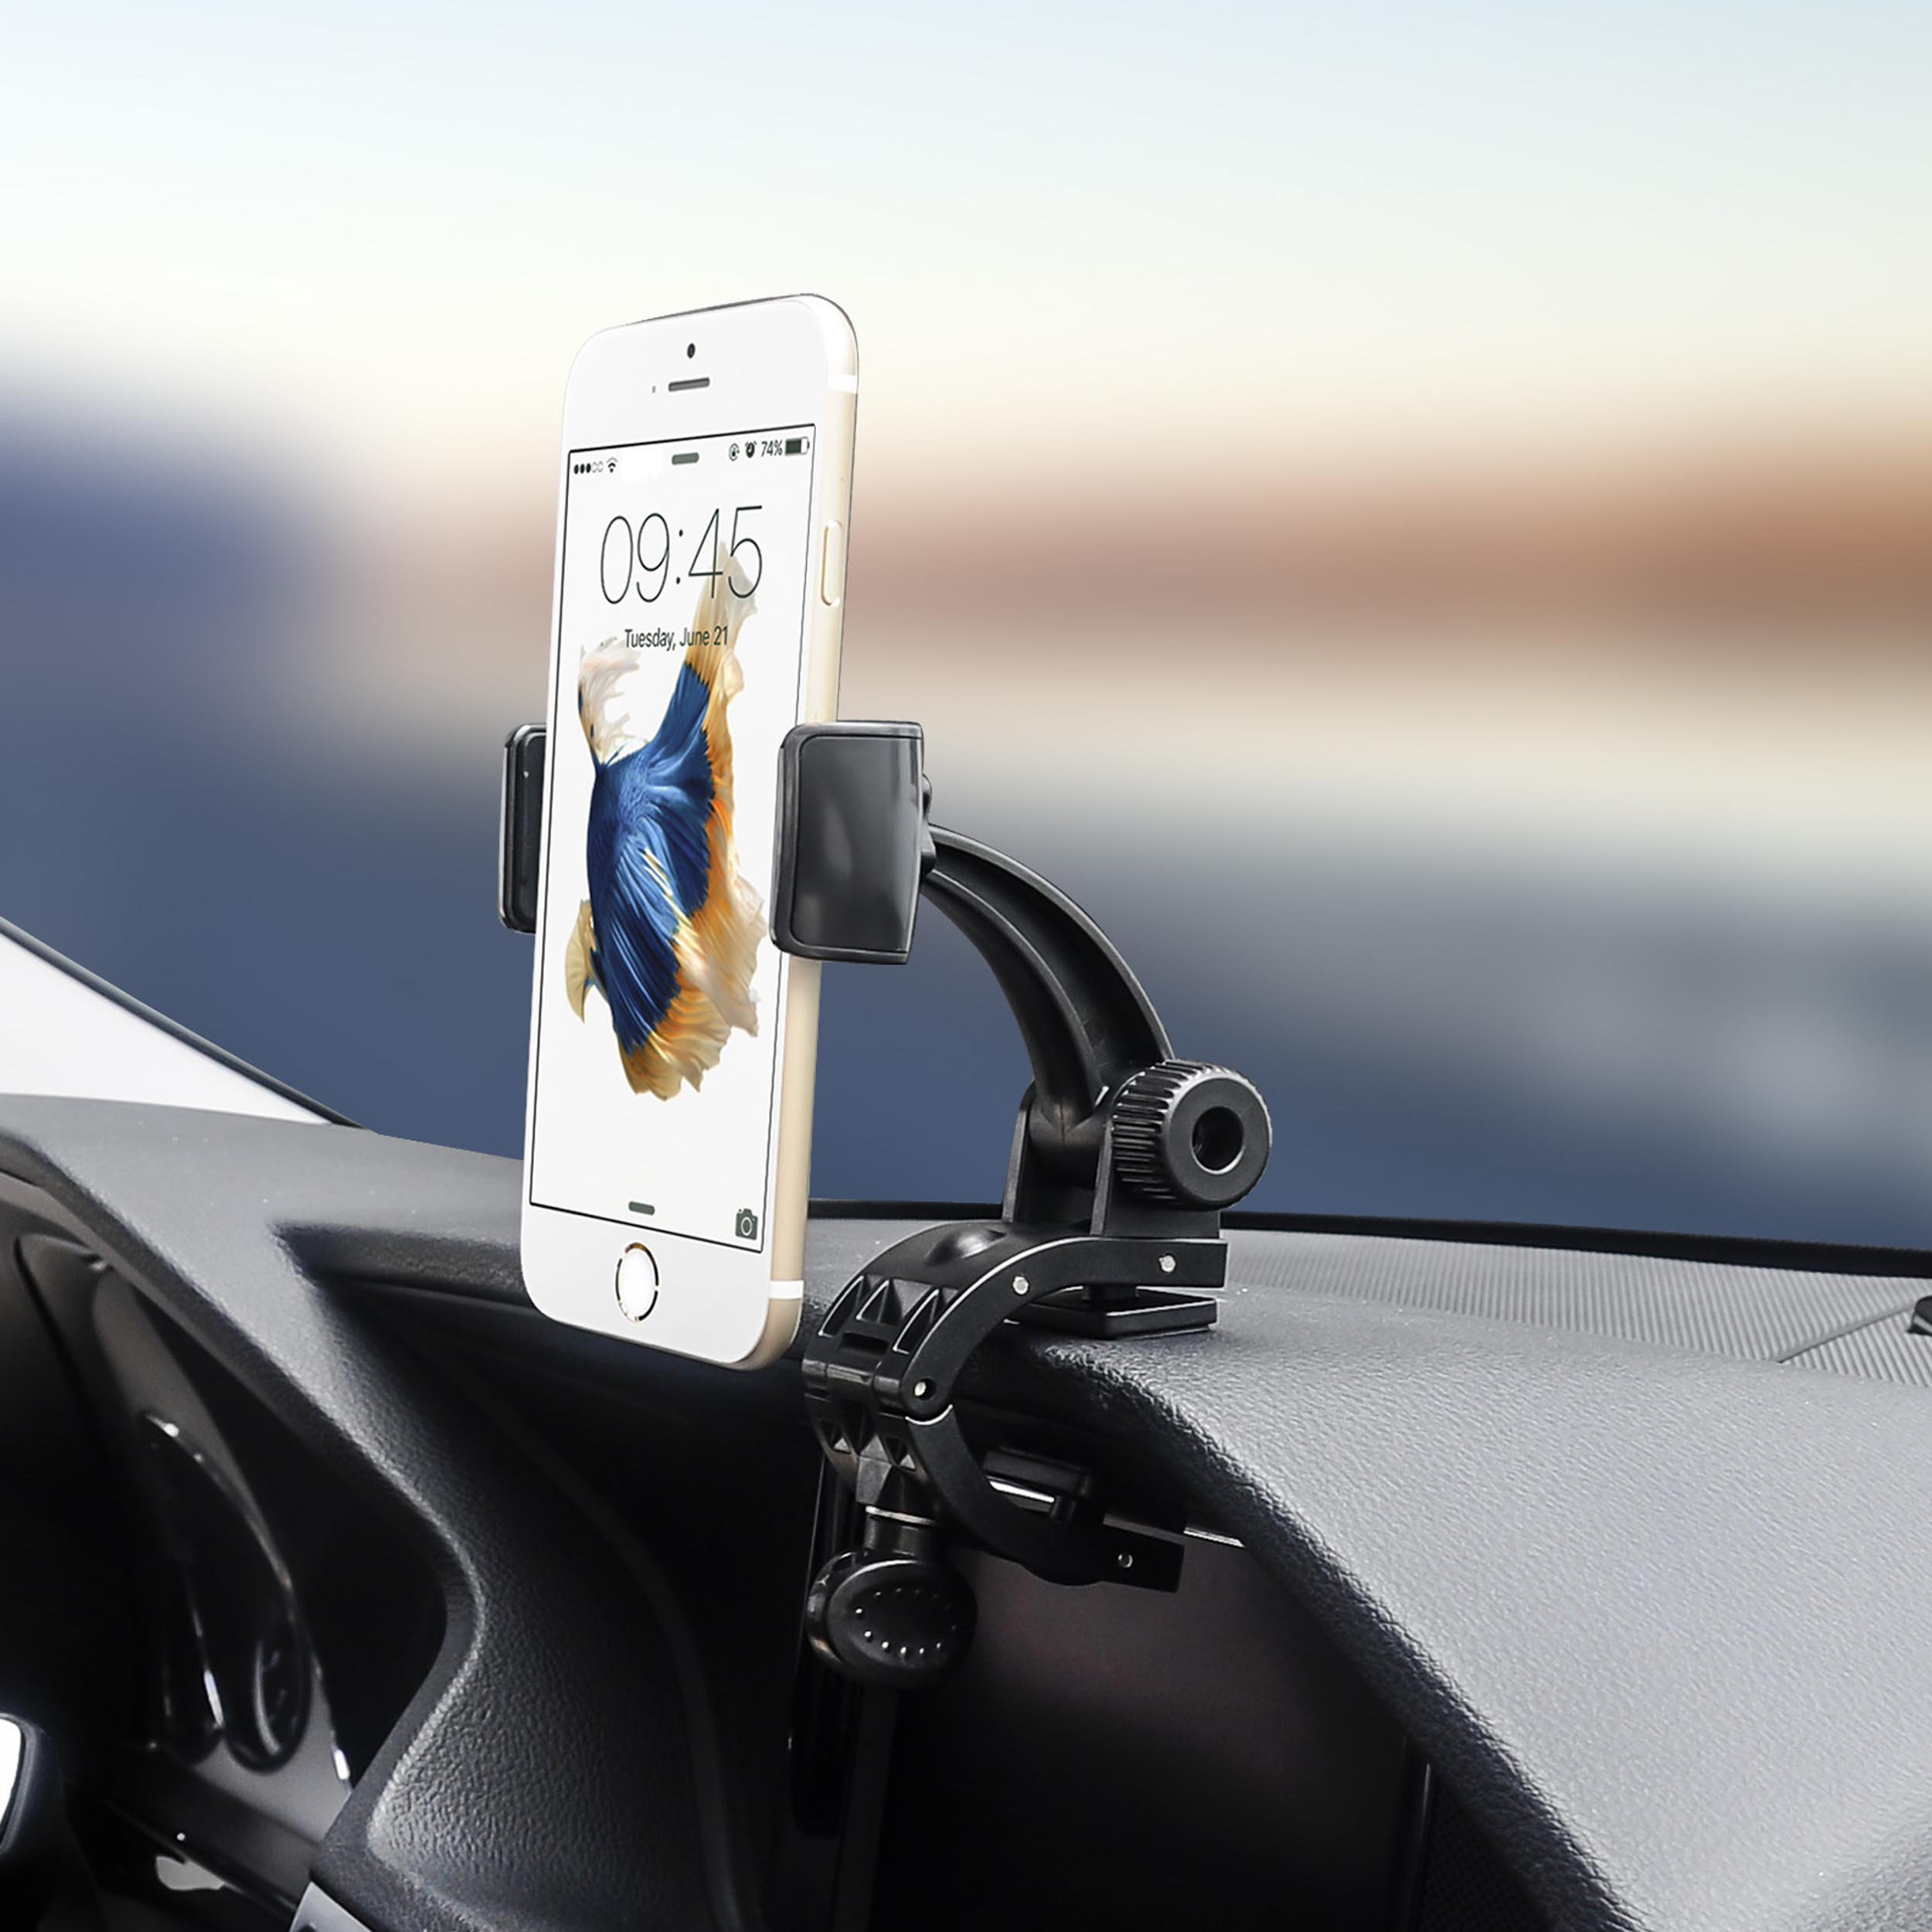 Universal Alligator Clip Dashboard Mount for iPhone / Samsung / Sony / LG / HTC Smartphones